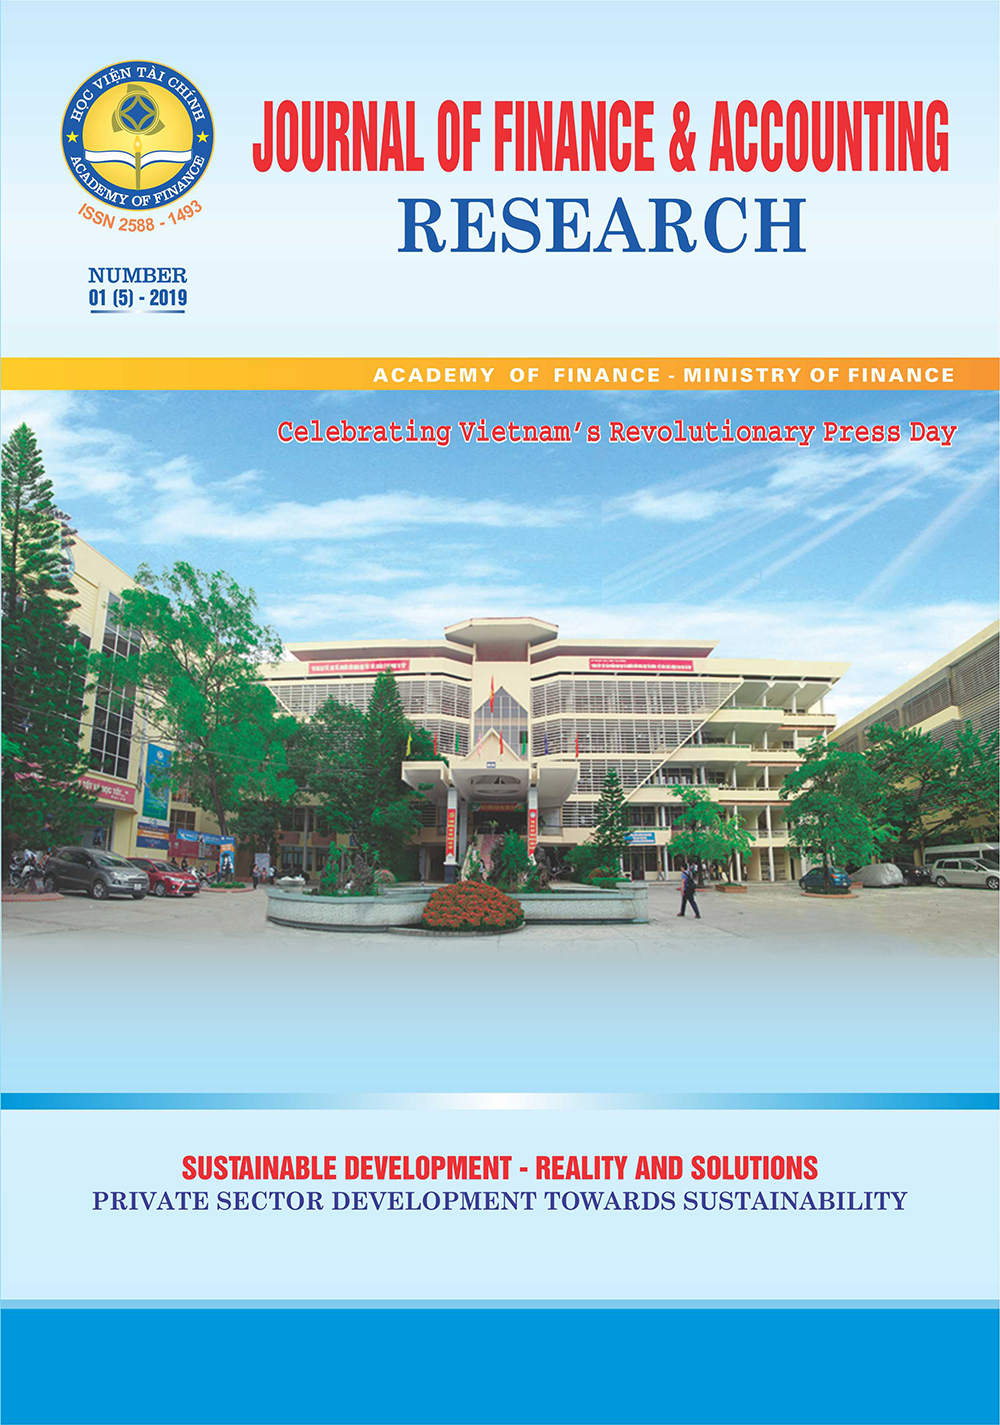 Journal of Finance & Accounting Research (1 (5) 2019)